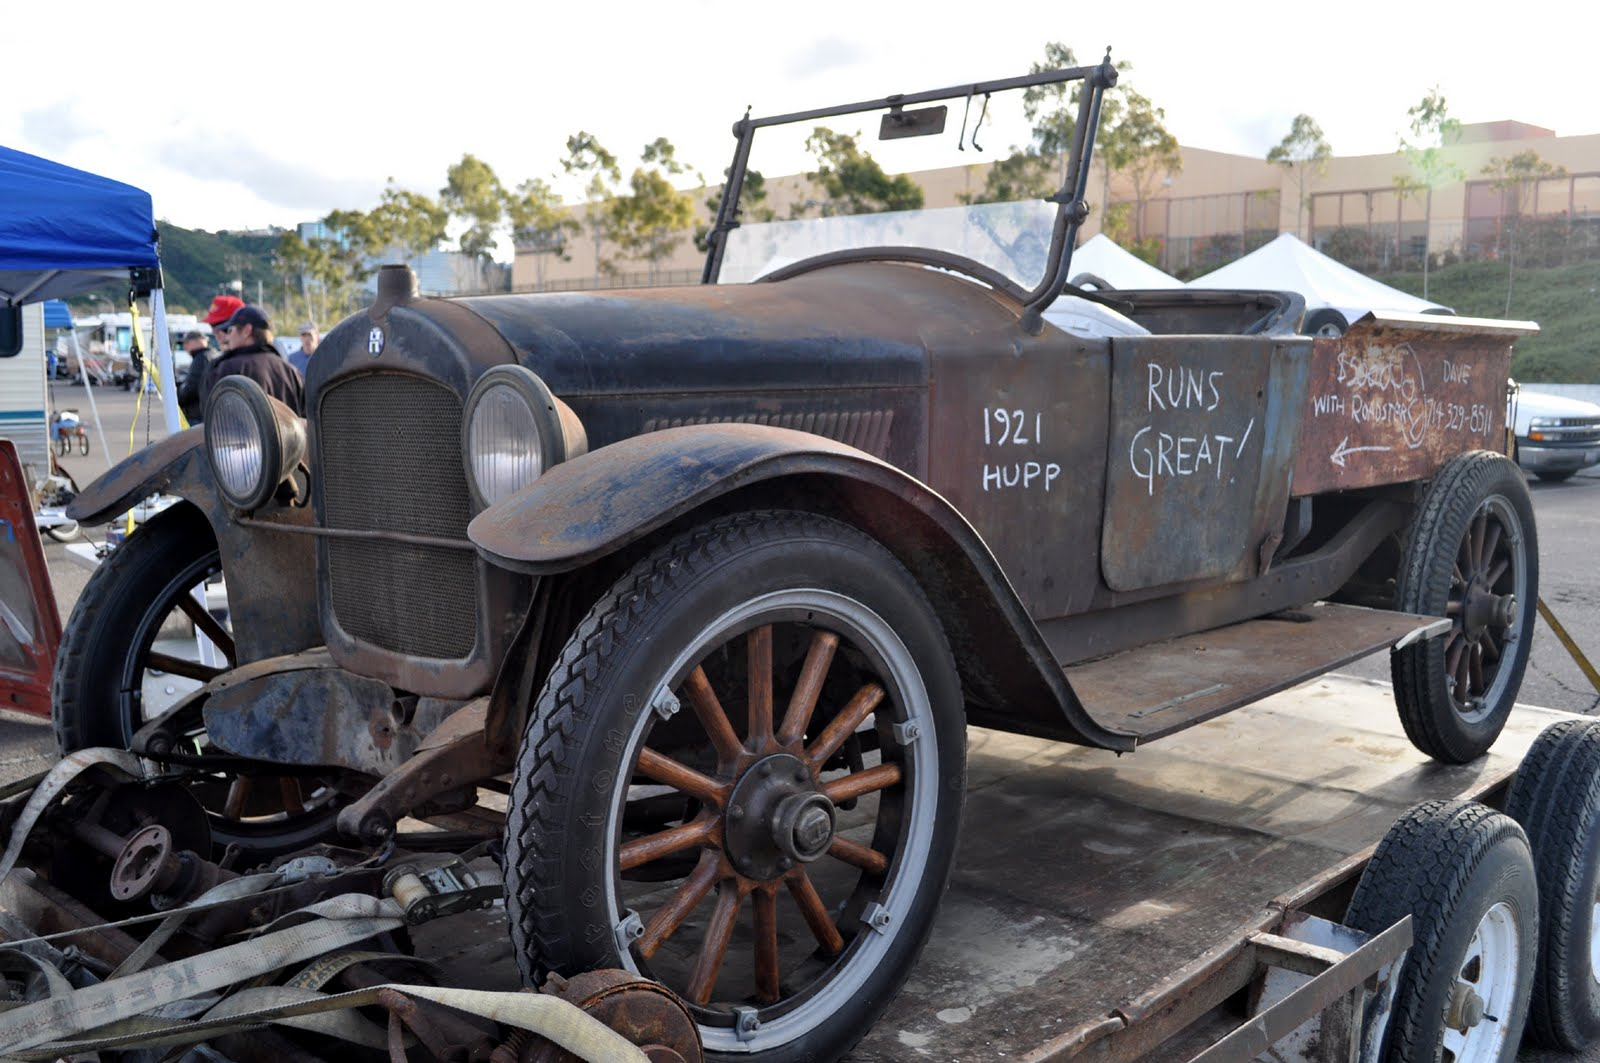 Fantastic Old Cars Prices Images - Classic Cars Ideas - boiq.info